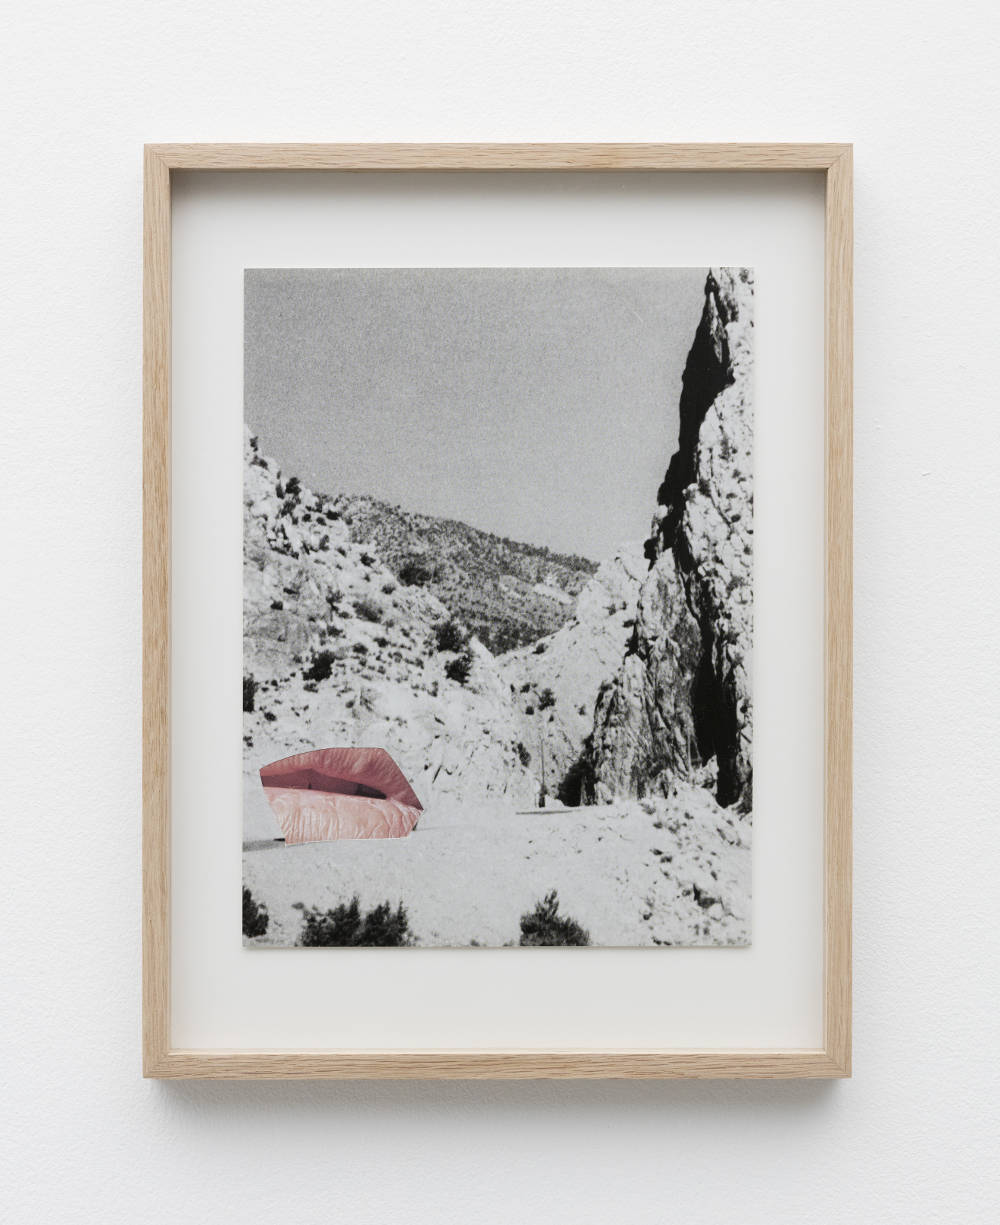 Eleonore False, Camouflage #3, 2018. Collage. Framed Dimensions: 38 x 29 cm (14.96 x 11.42 inches) Courtesy of the artist & VNH Gallery. Photo: Claire Dorn